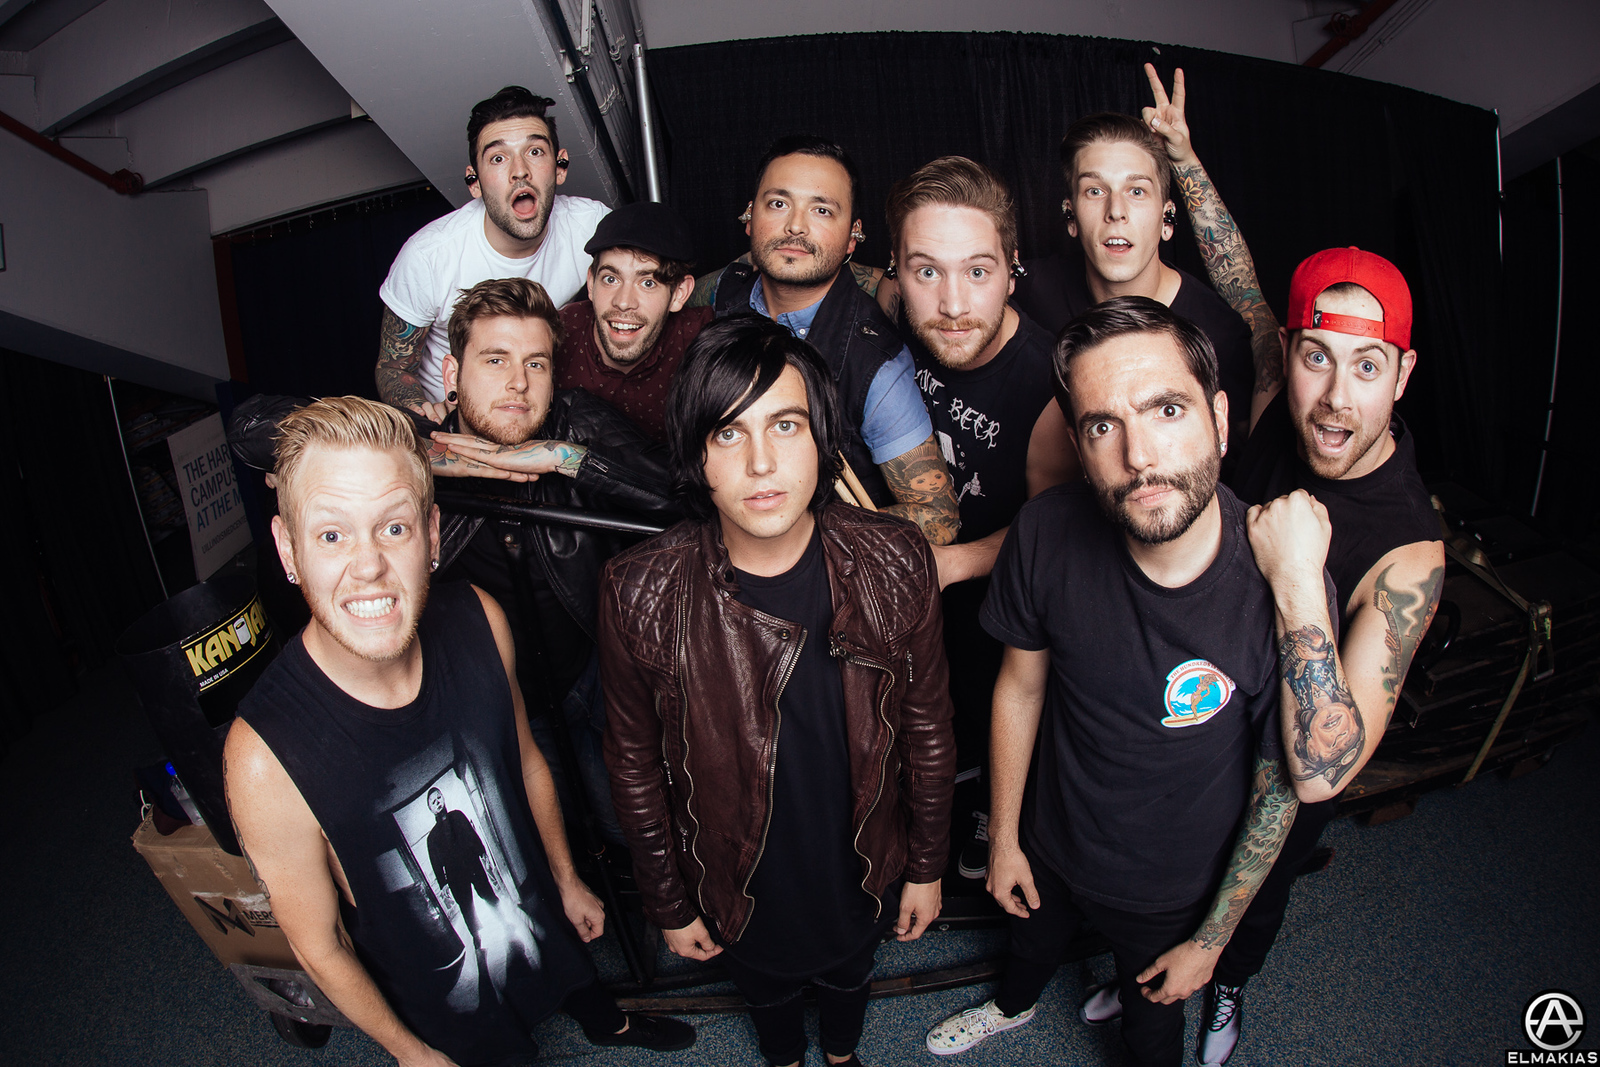 Sleeping with Siren and A Day To Remember - Parks and Devastation Tour by Adam Elmakias